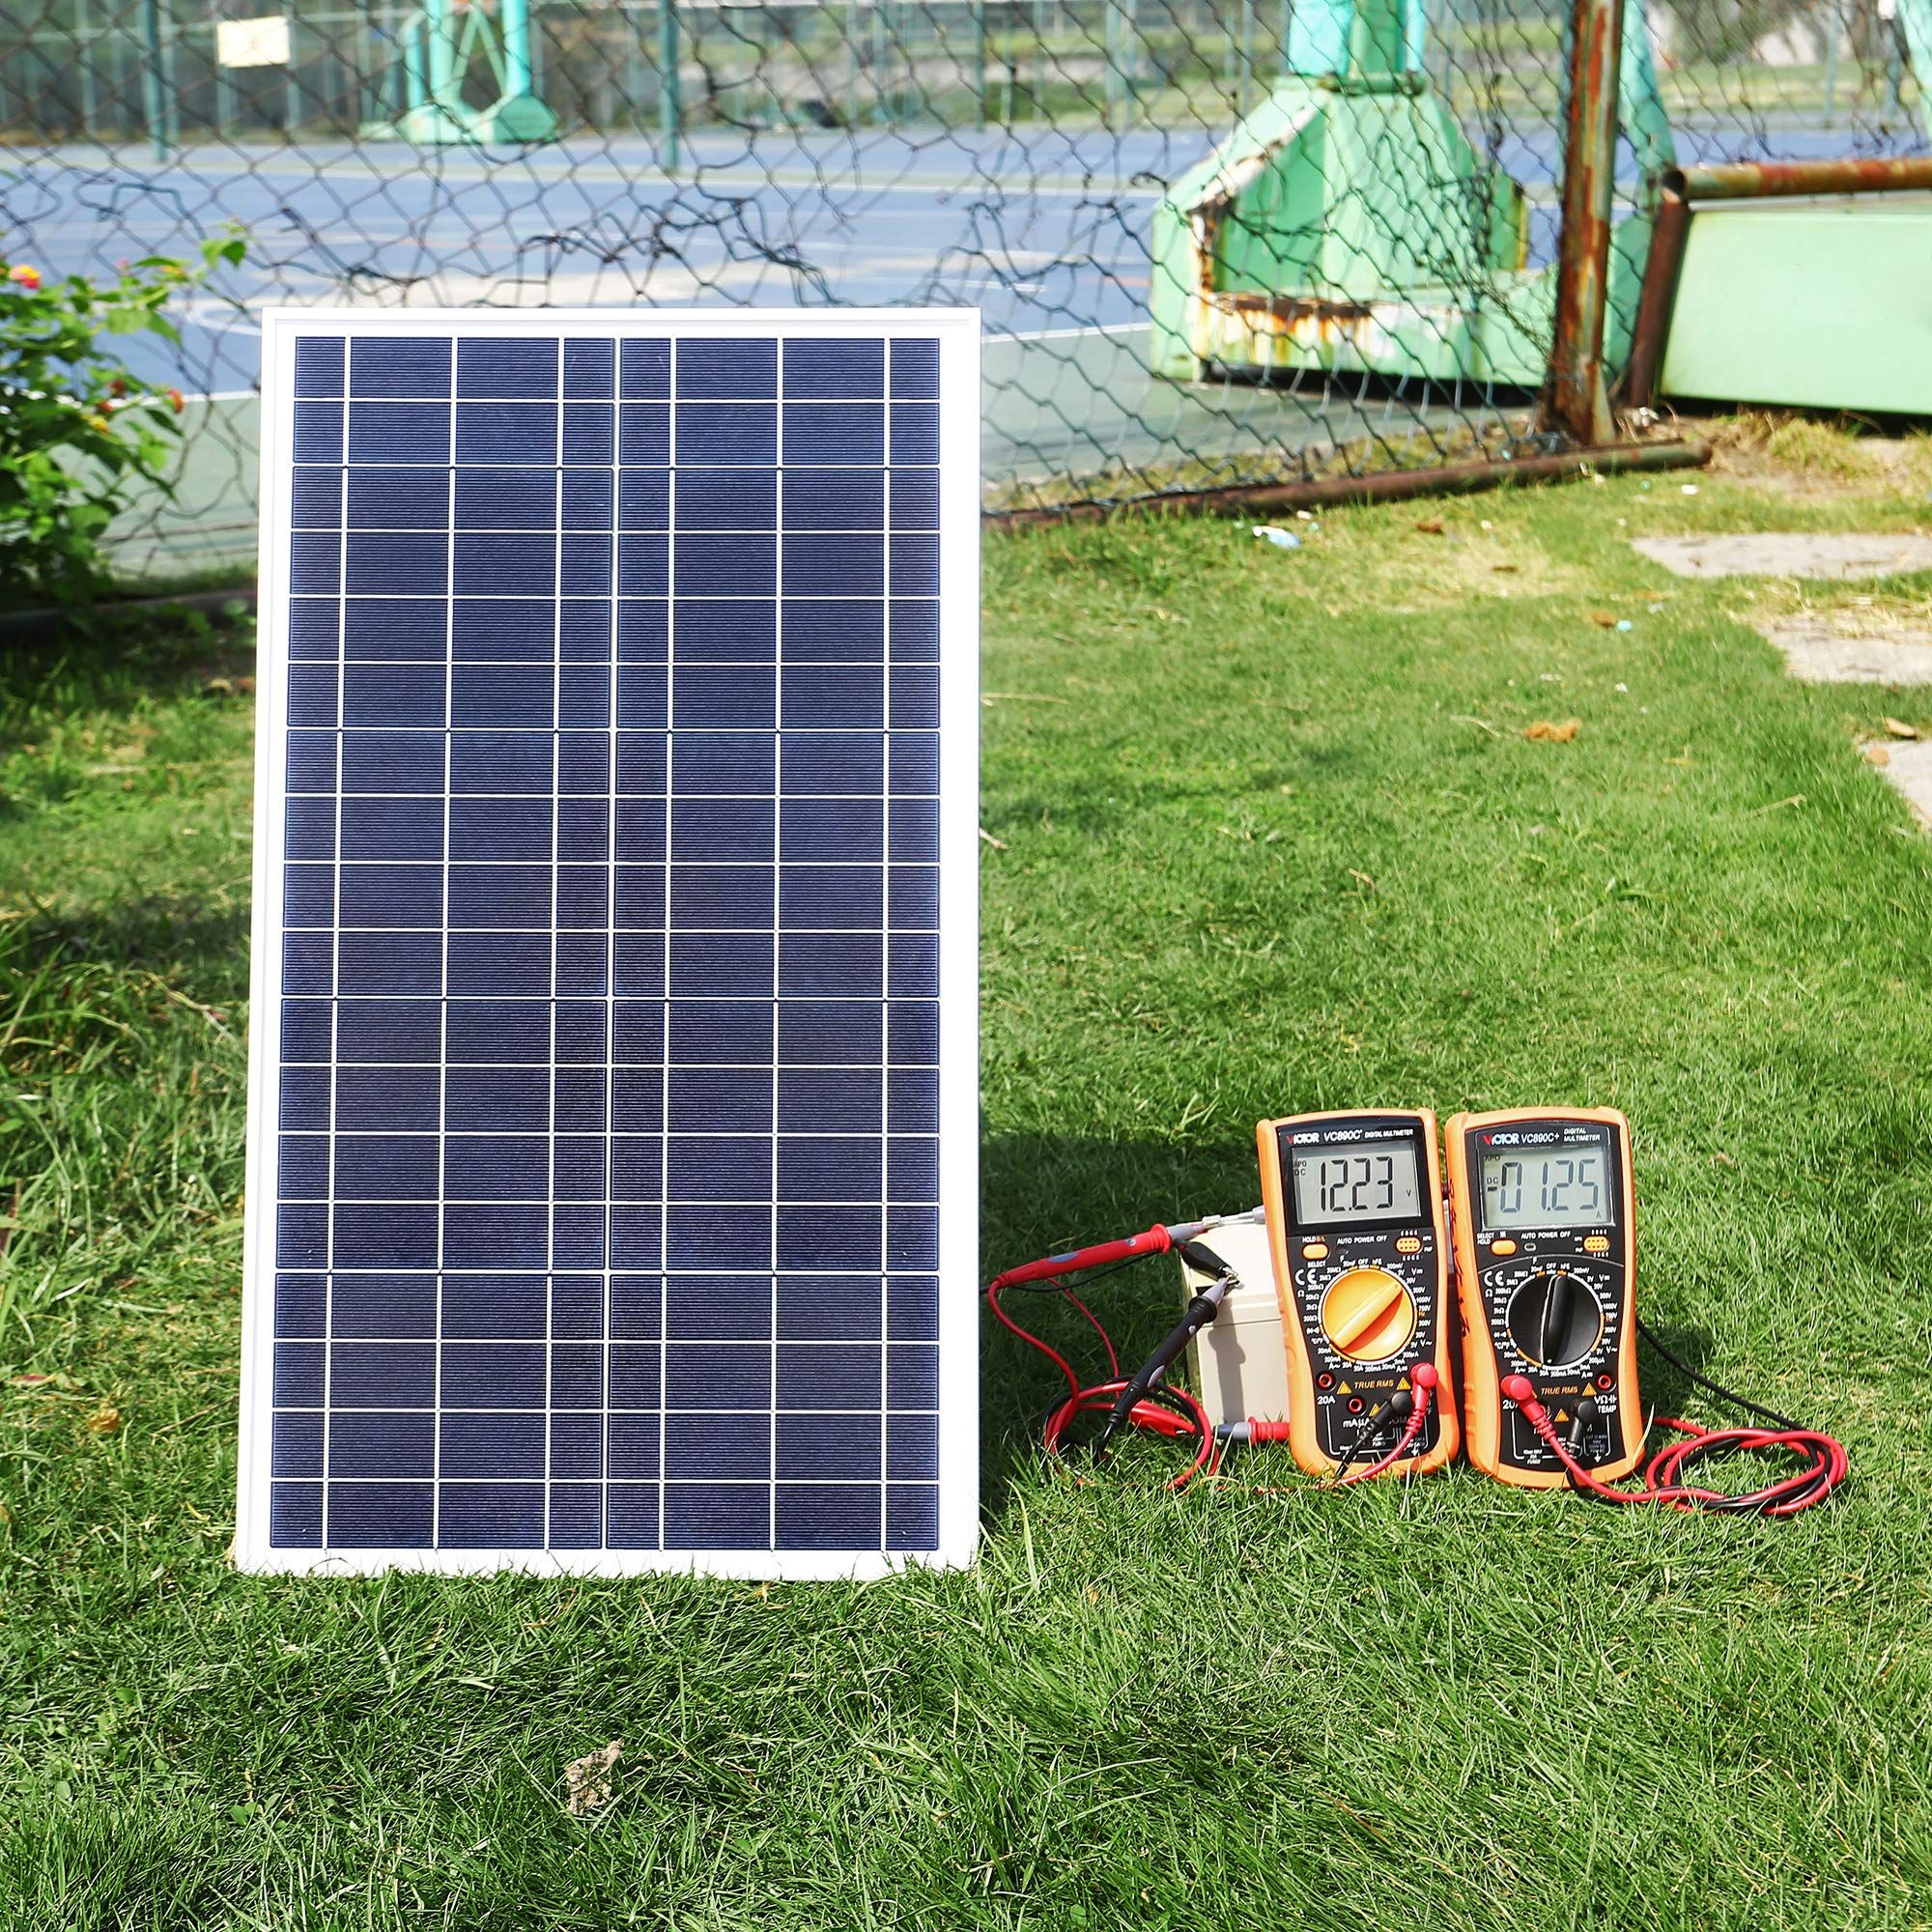 Suner Power 30 Watts 12v Off Grid Solar Panel Kit Waterproof 30w Solar Panel Photocell 10a Solar Charge Controller Solar Panels Off Grid Solar Panels Solar